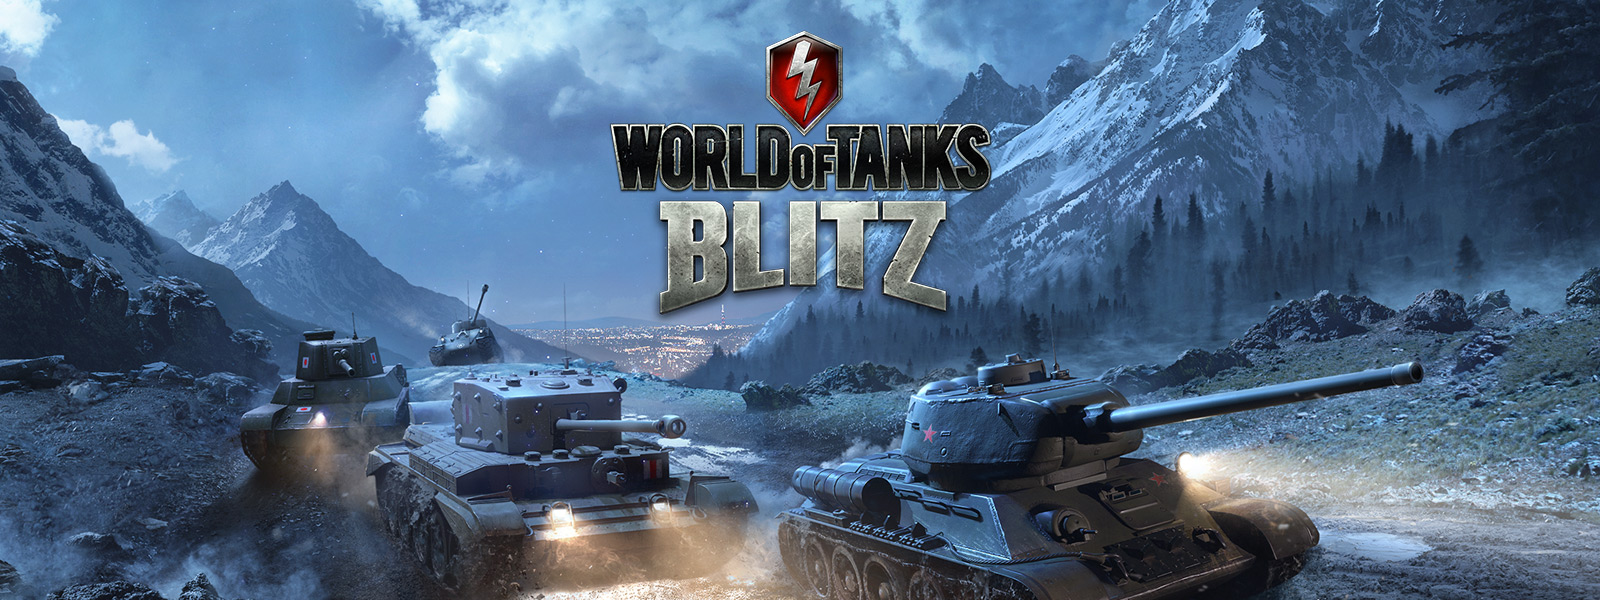 Map World Of Tanks Pc To Controller%0A World of Tanks Blitz